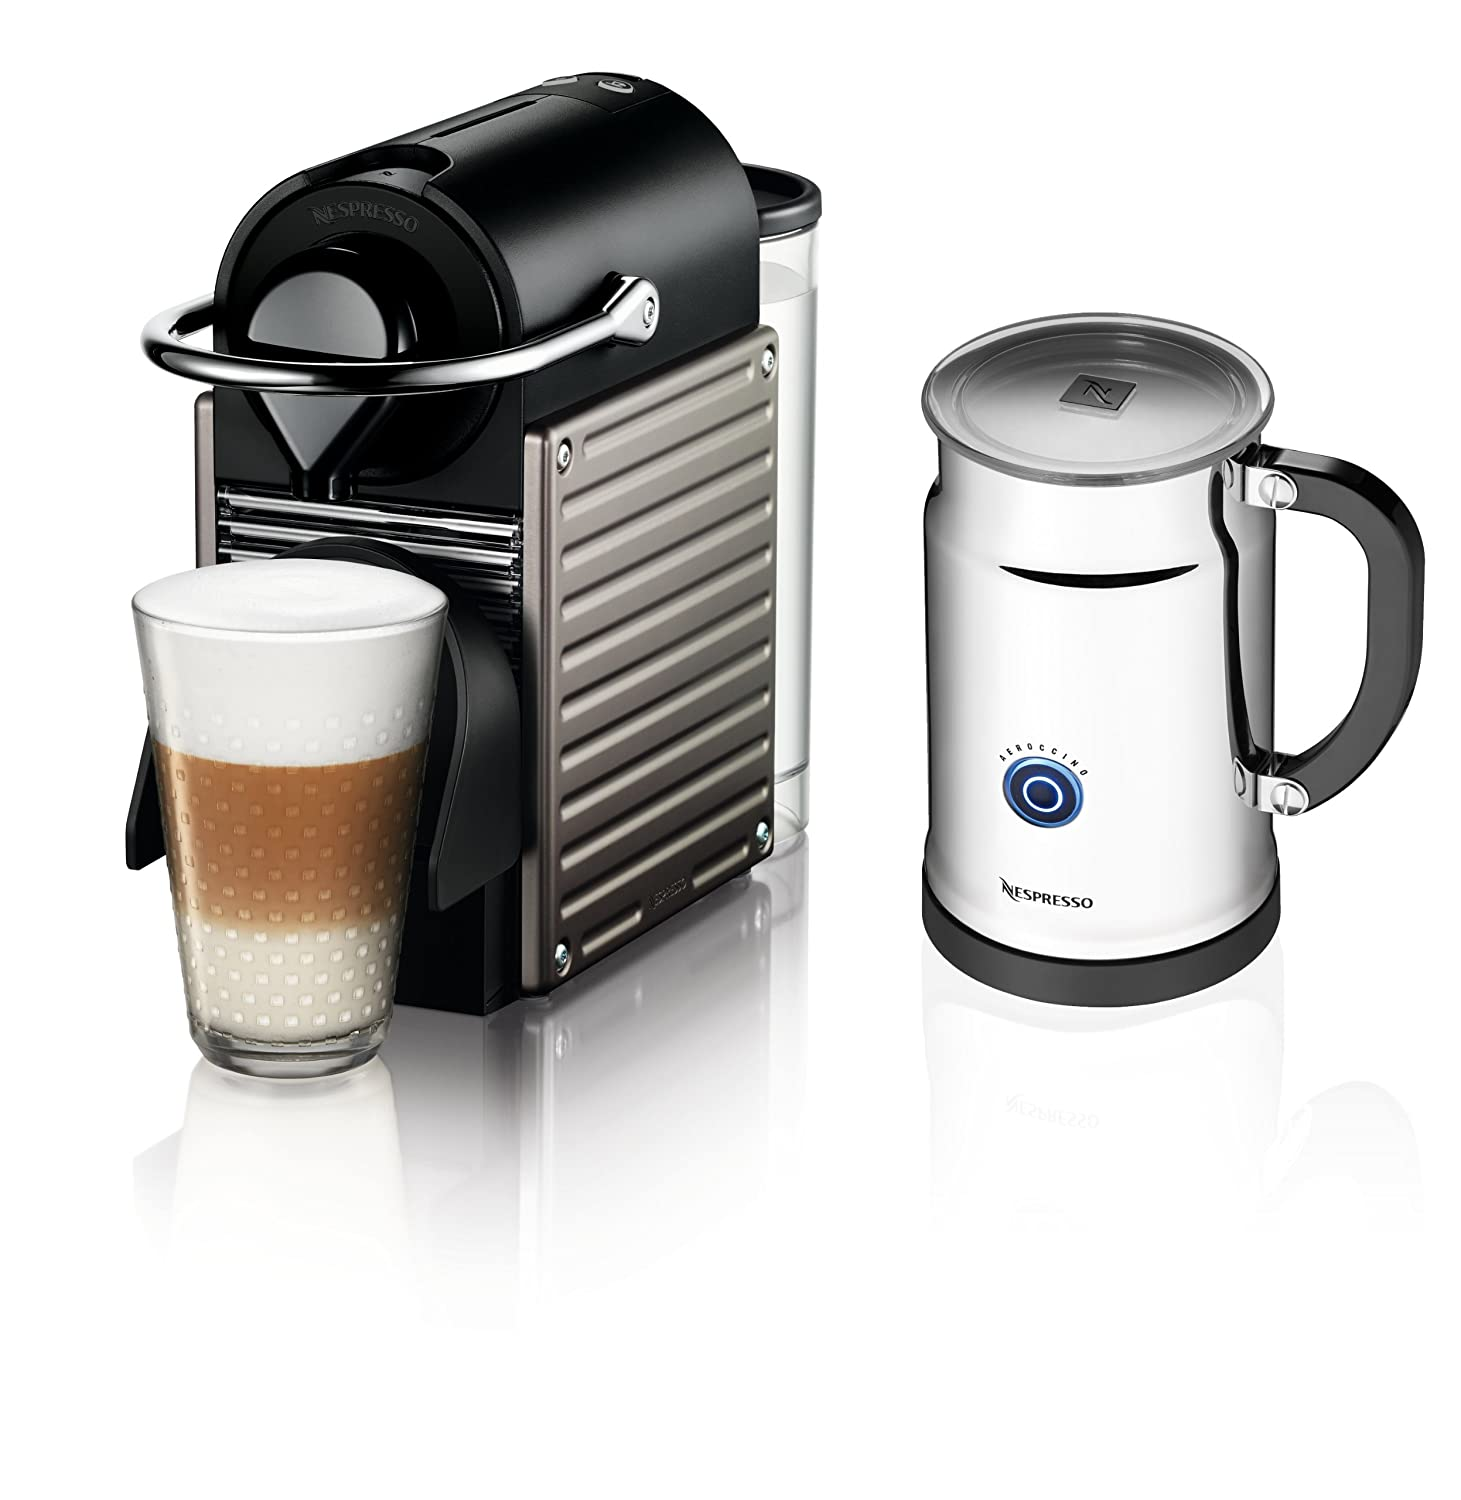 Nespresso Pixie Espresso Maker With Aeroccino Plus Milk Frother, Electric Titan Discontinued Model